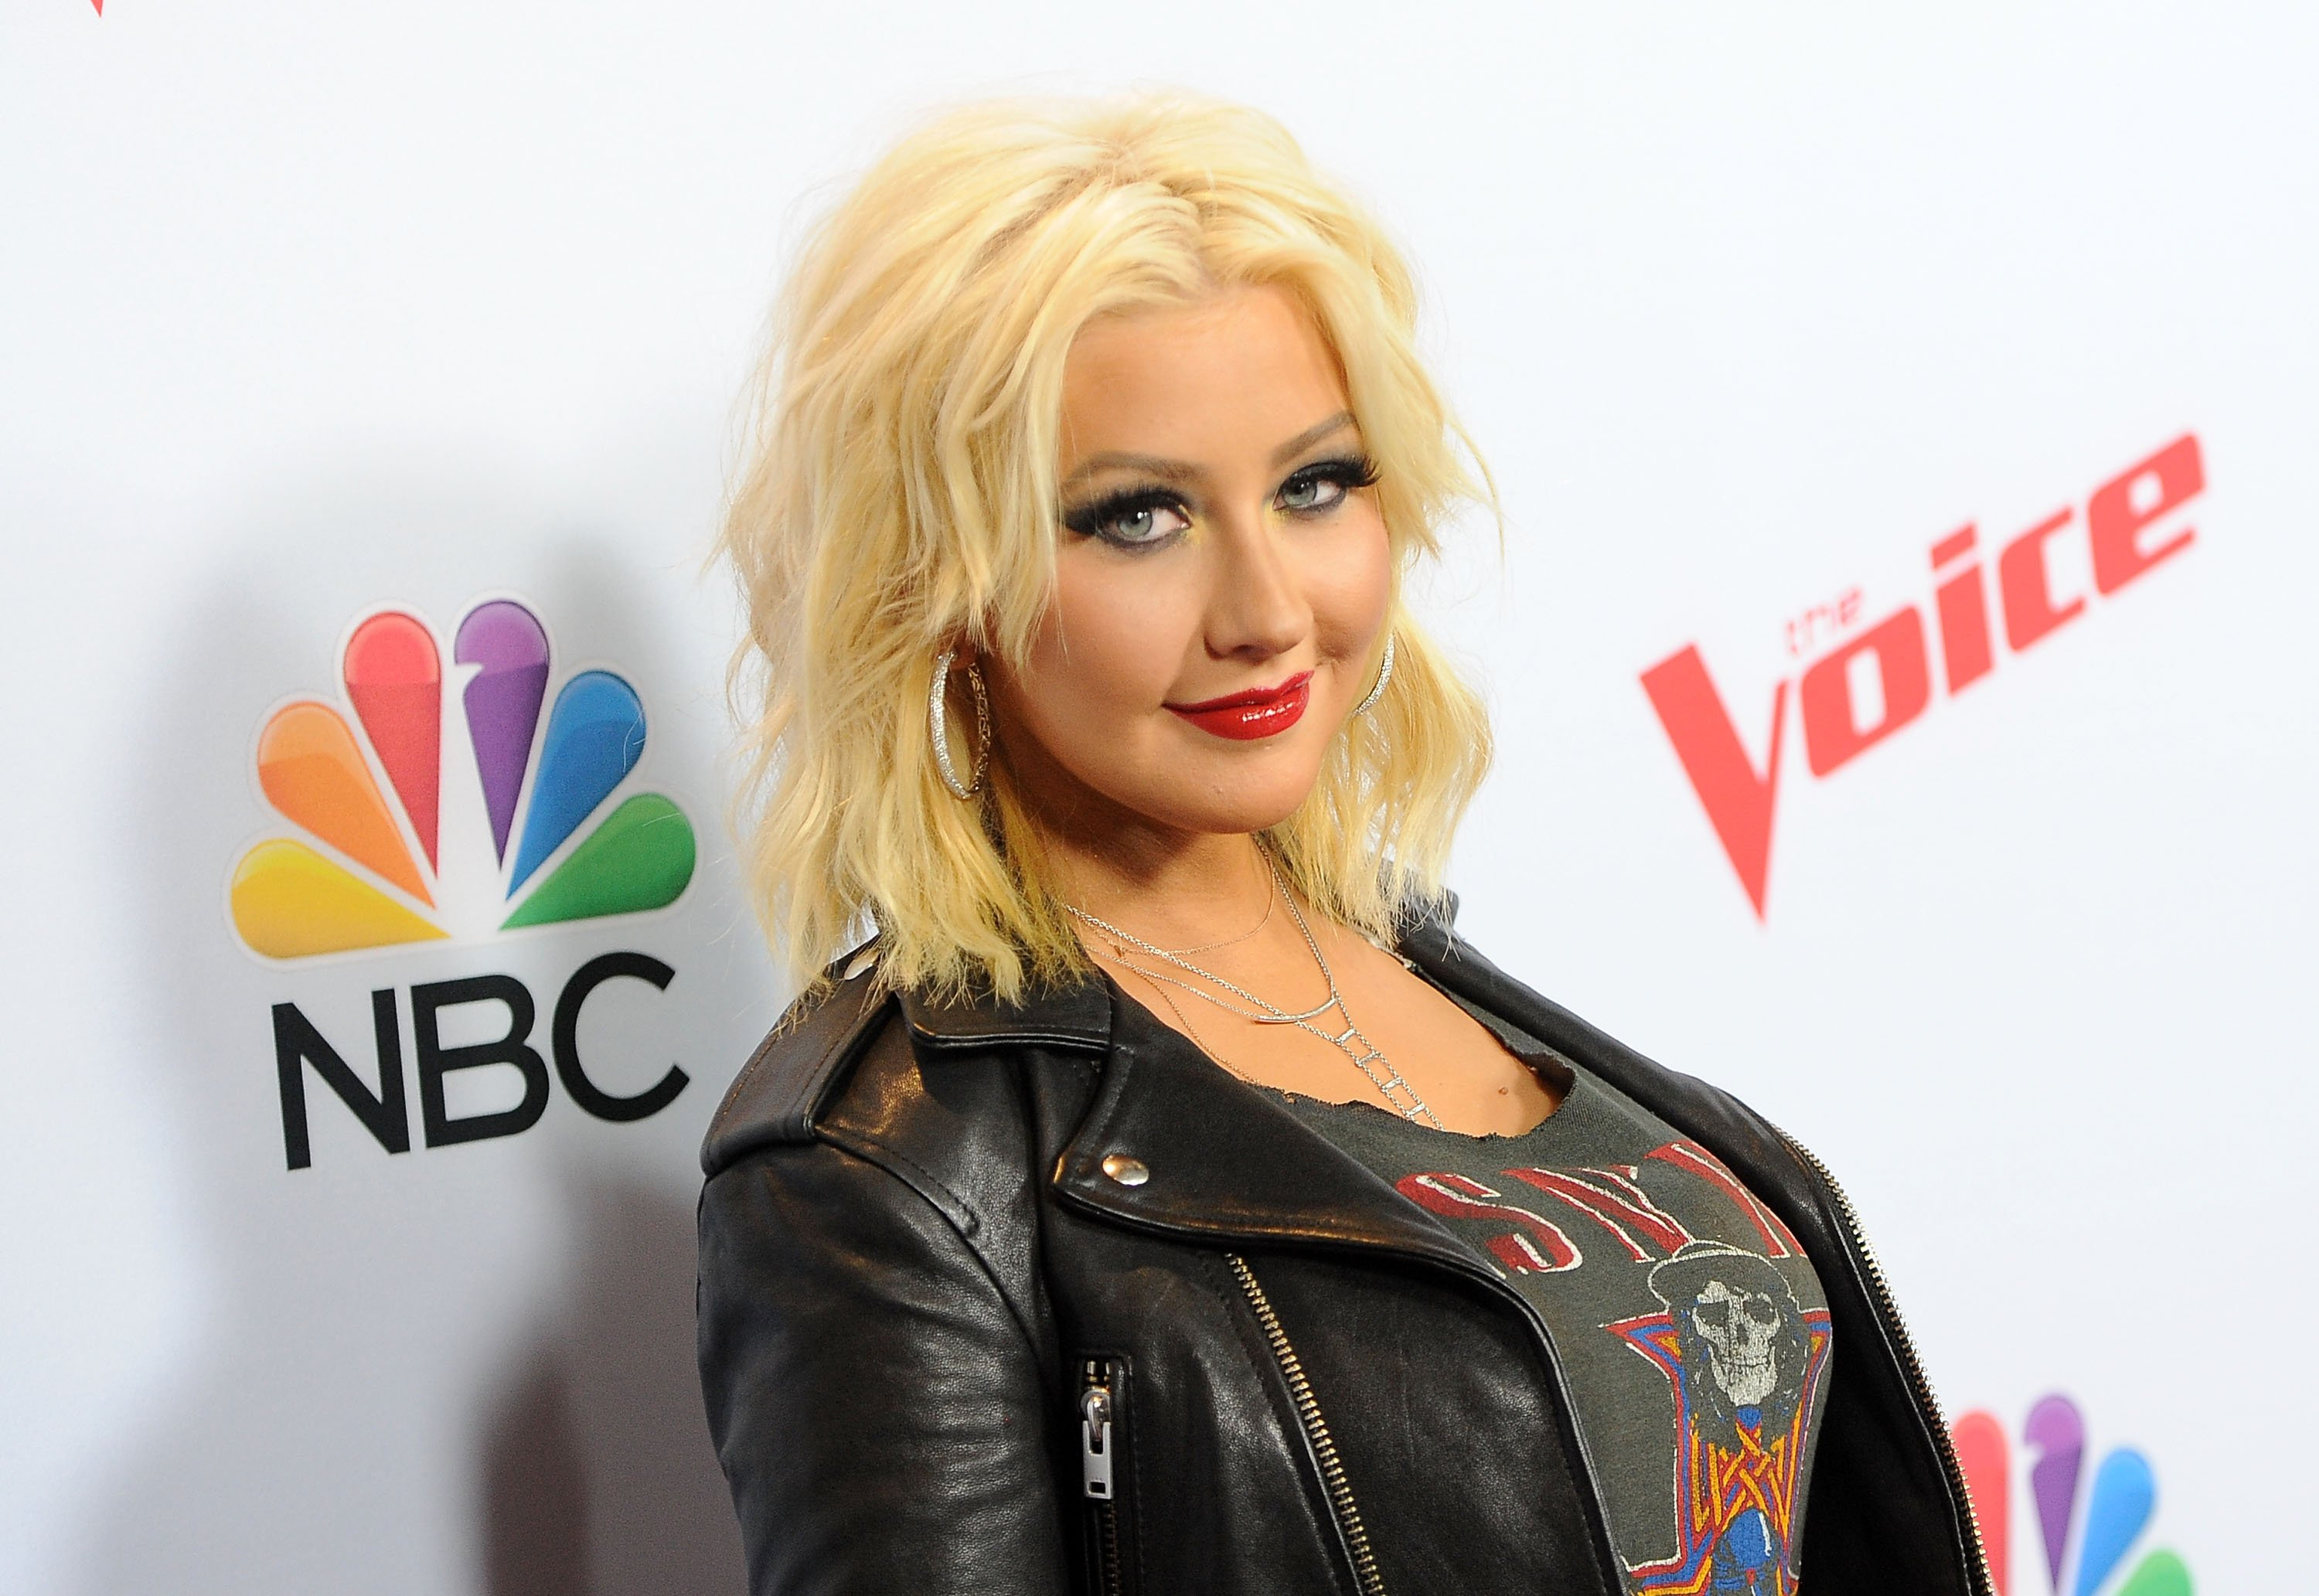 """Christina Aguilera arrives at NBC's """"The Voice"""" Season 8 red carpet event at Pacific Design Center on April 23, 2015 